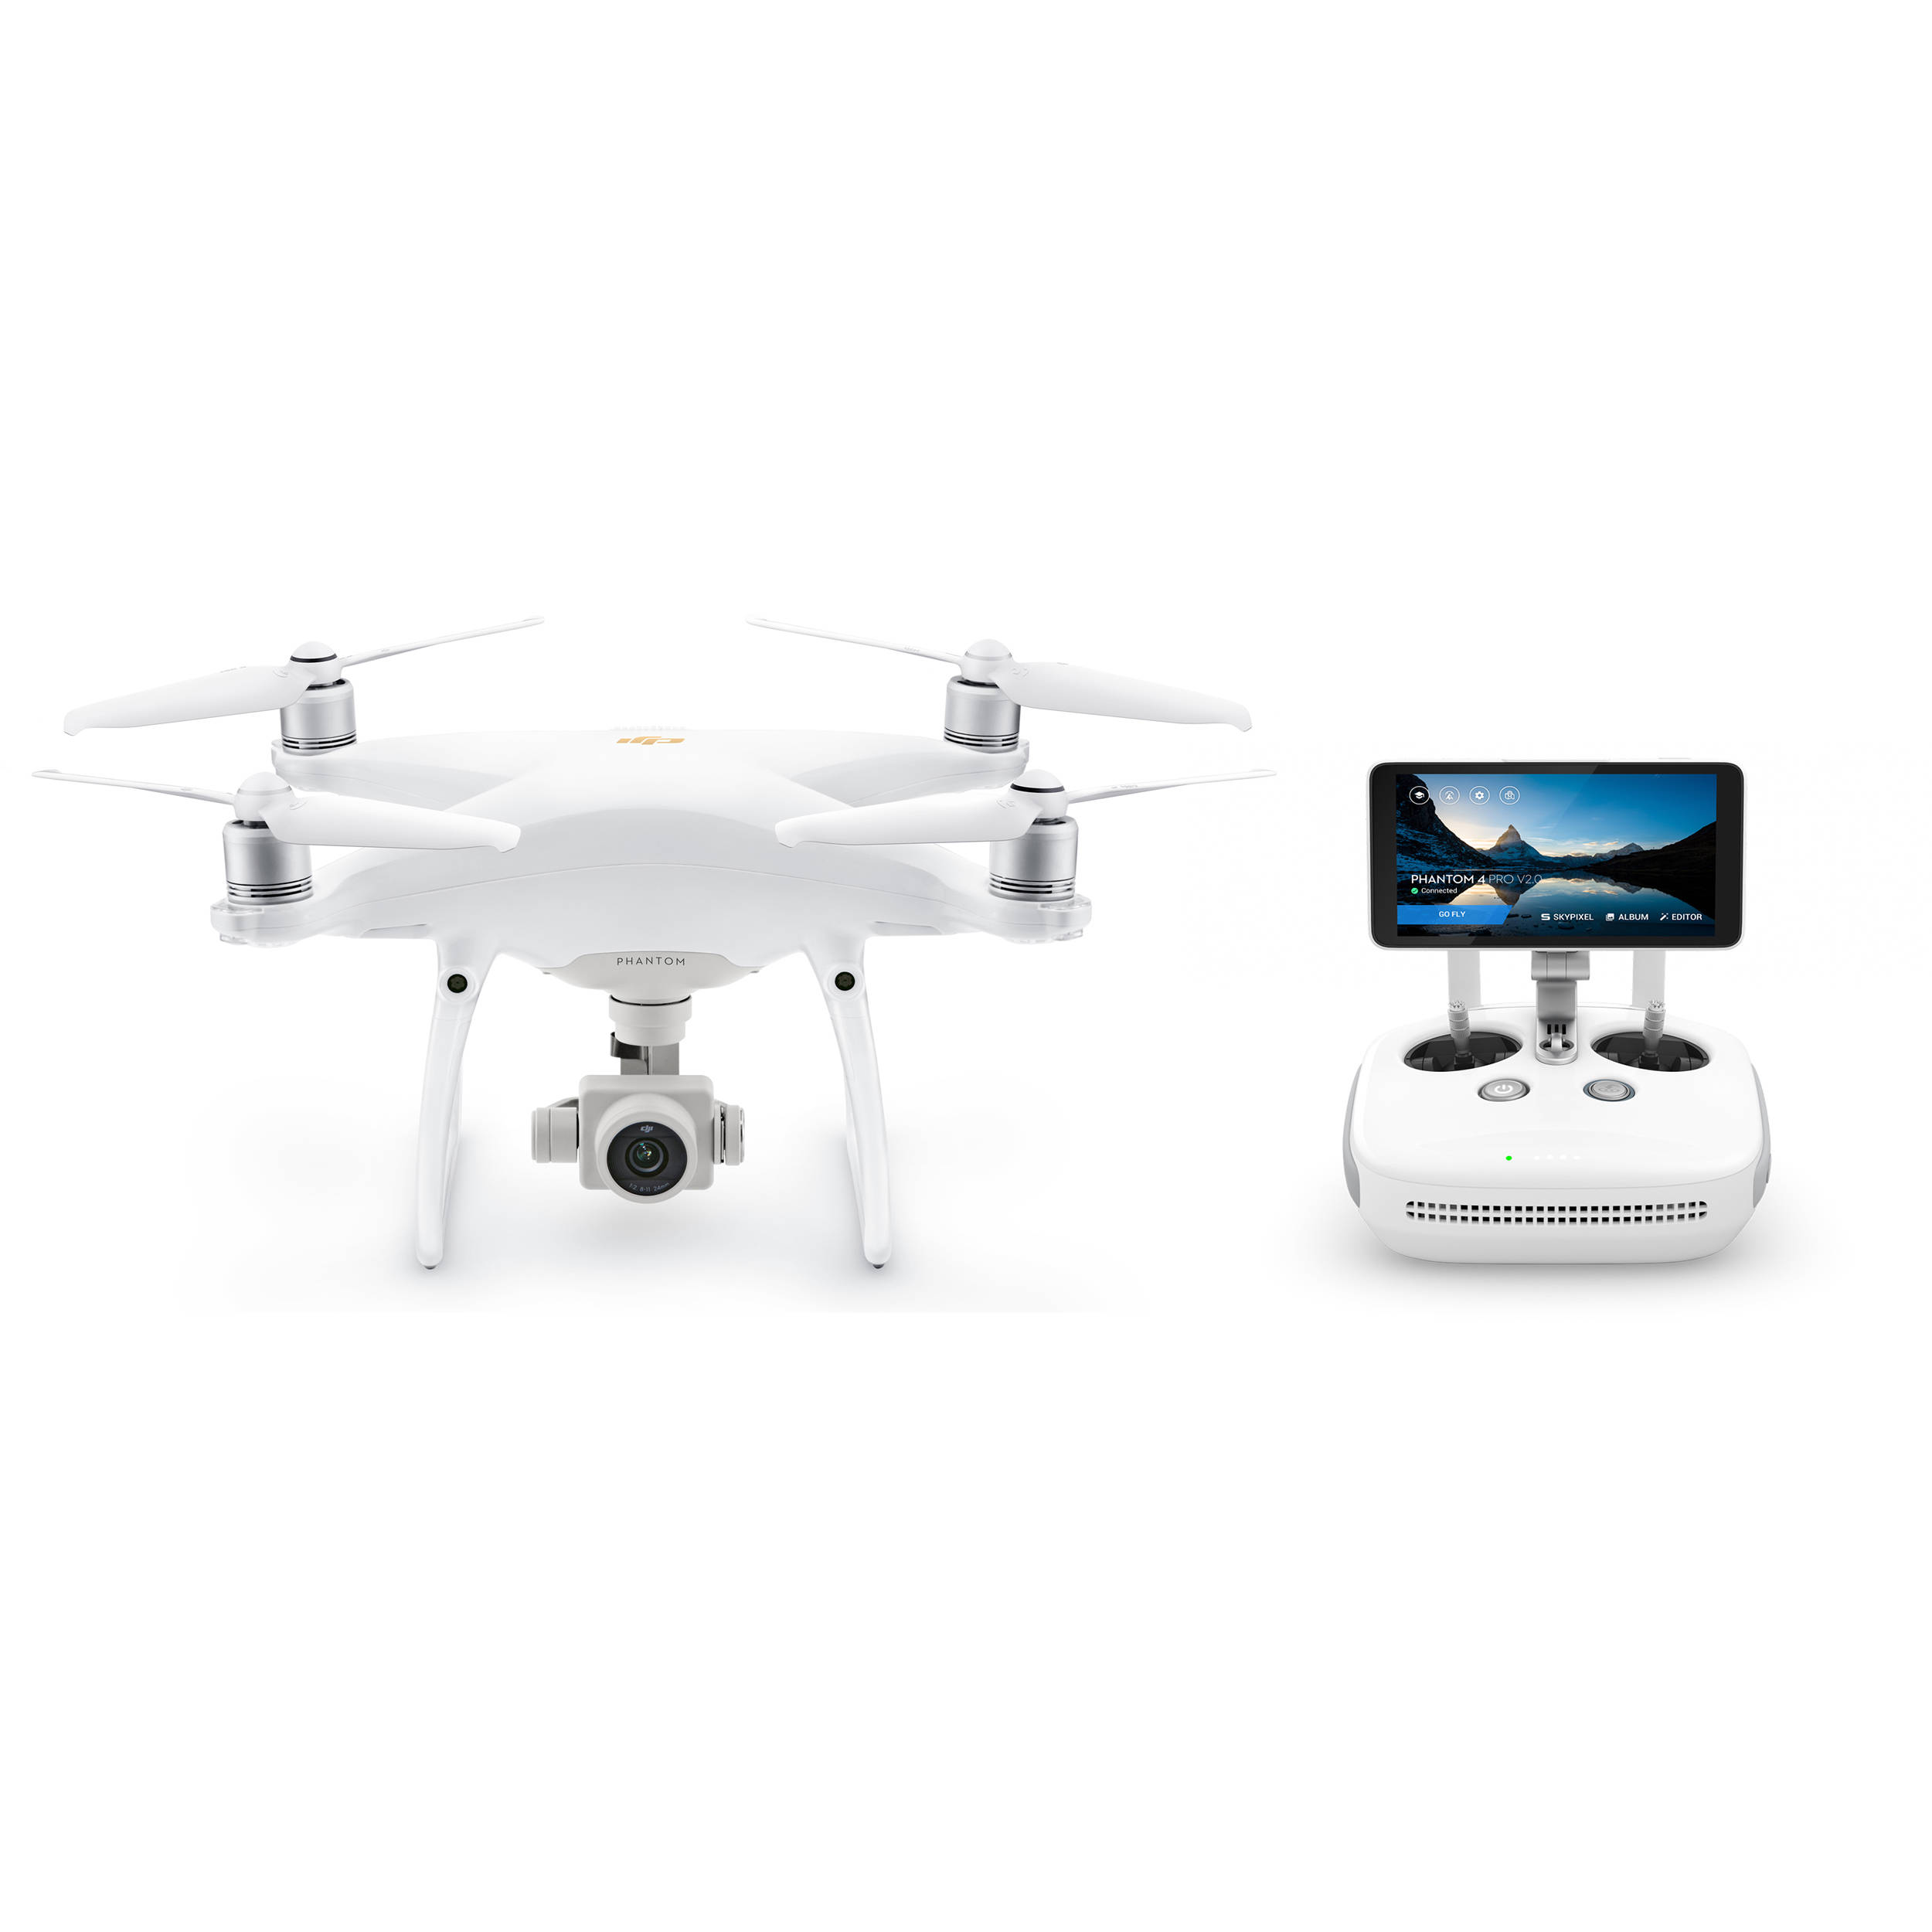 DJI Phantom 4 Pro+ V2.0 (with 5.5 inch display included)